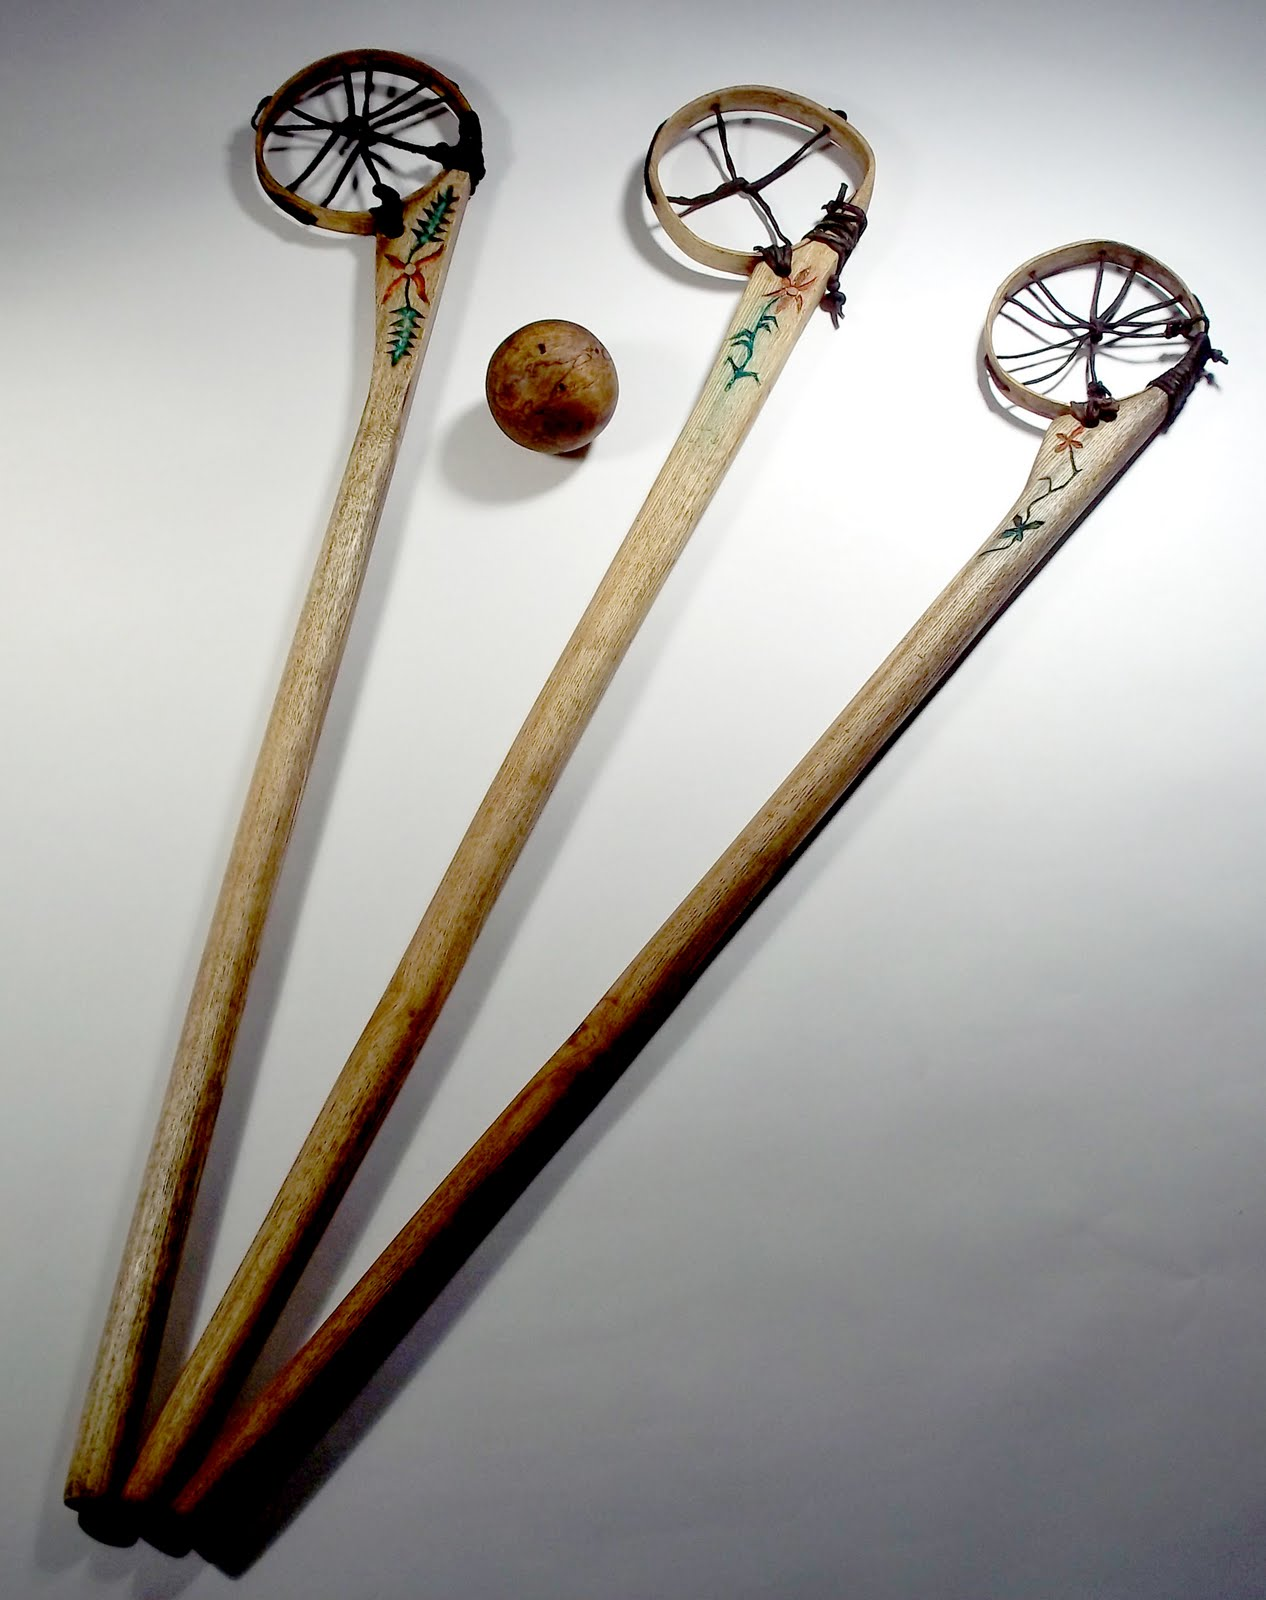 Contemporary Makers Baggataway Sticks And Wooden Ball By